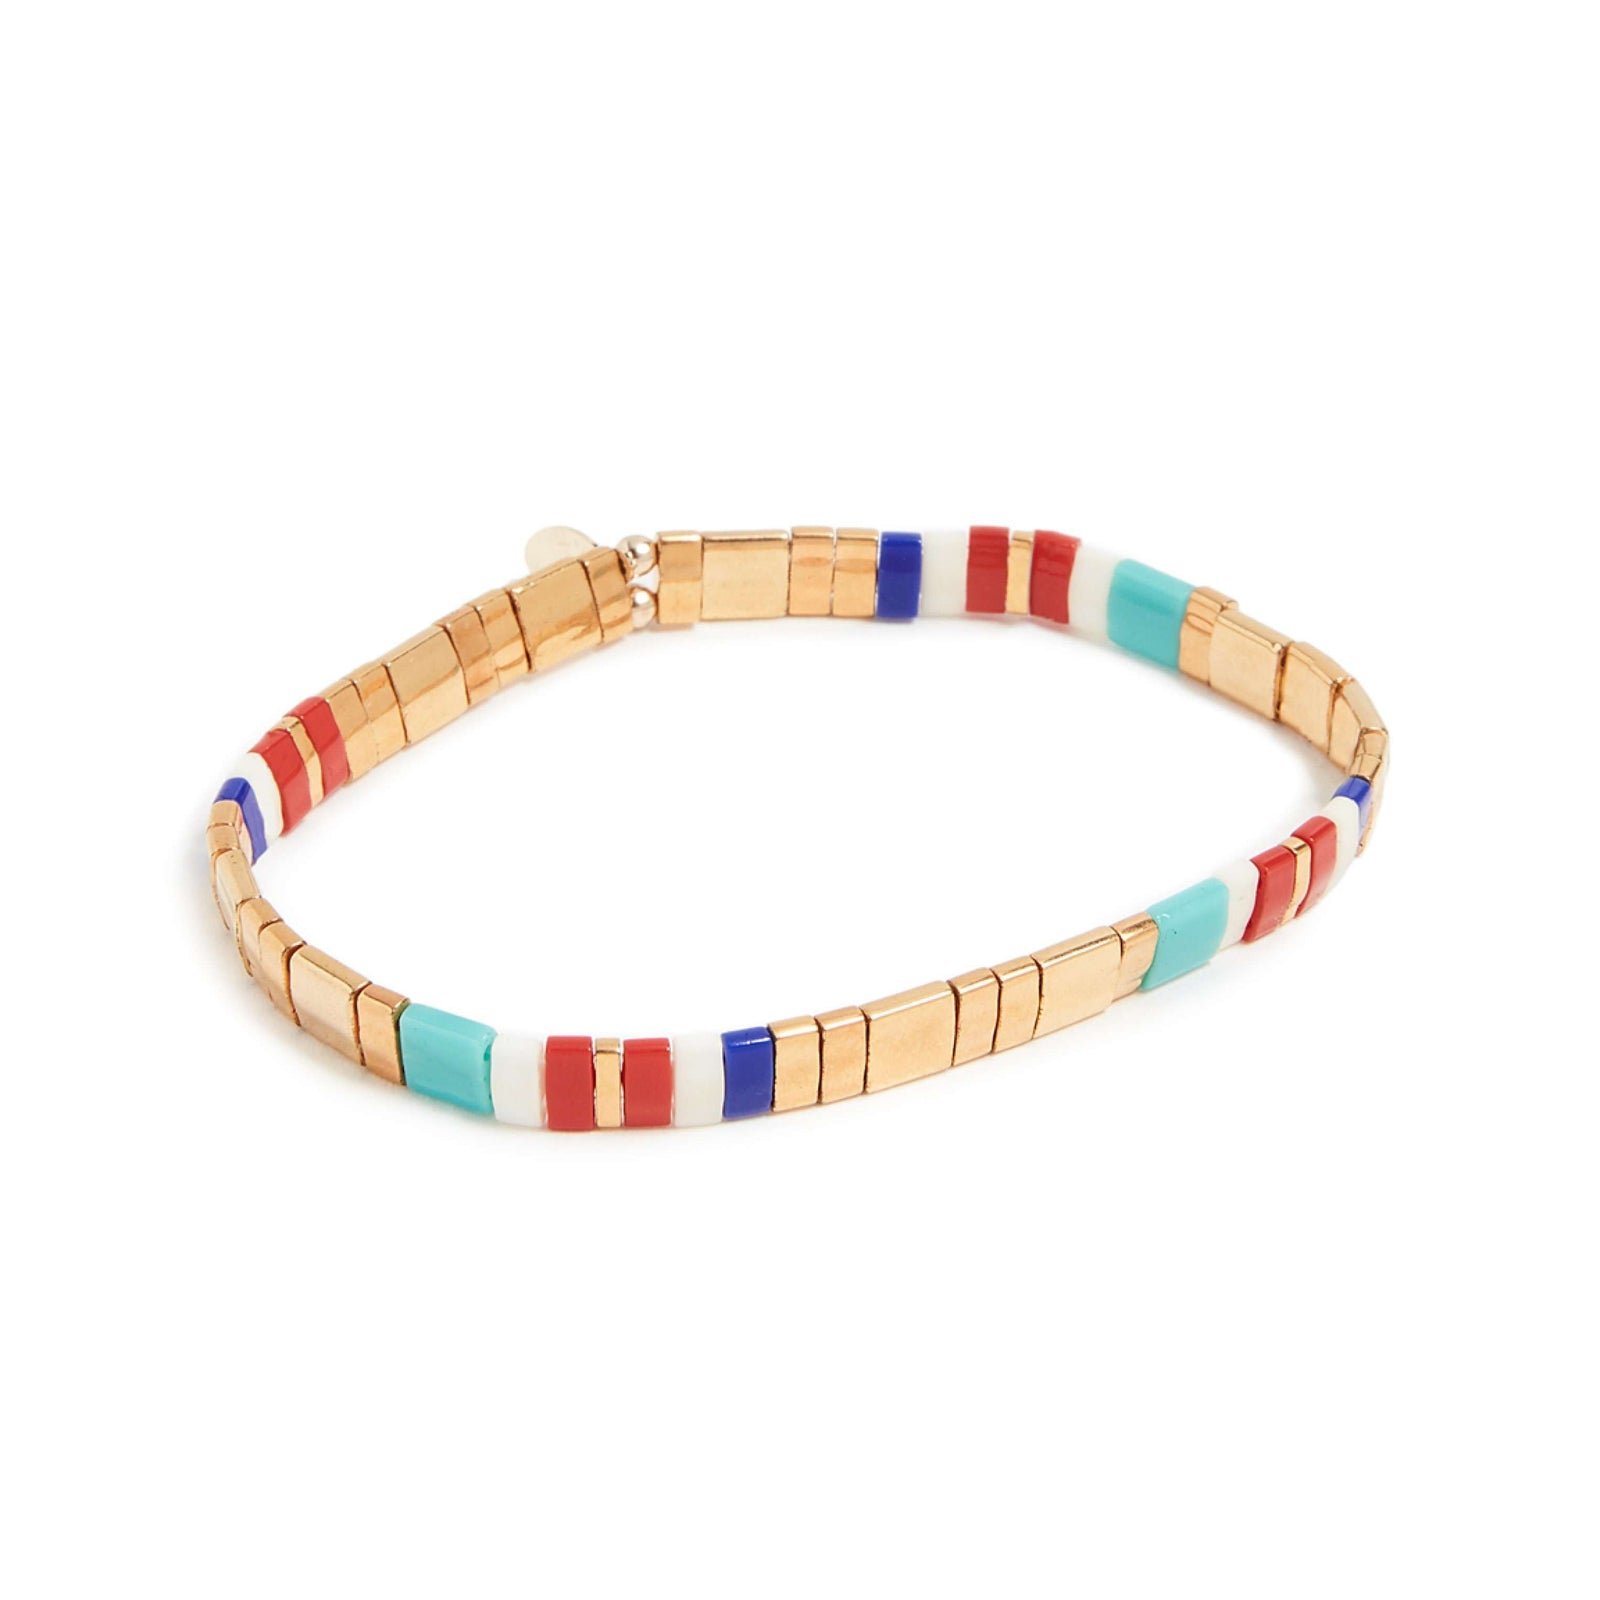 tilu-bracelet-the-chiefbracelets-jewelry